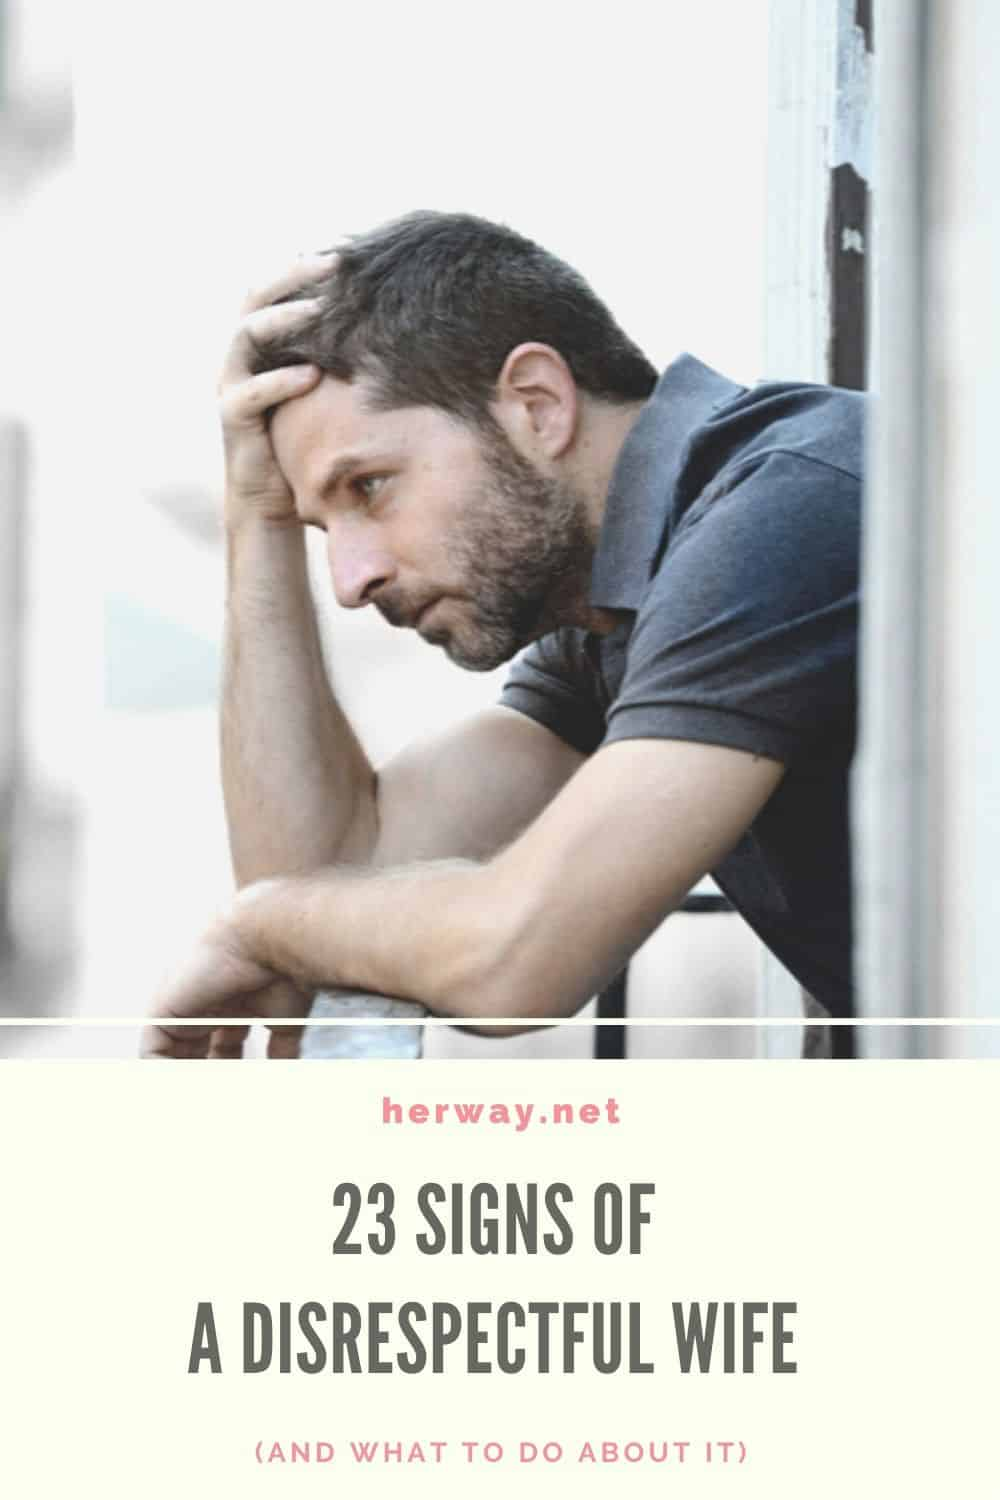 23 Signs Of A Disrespectful Wife (And What To Do About It)